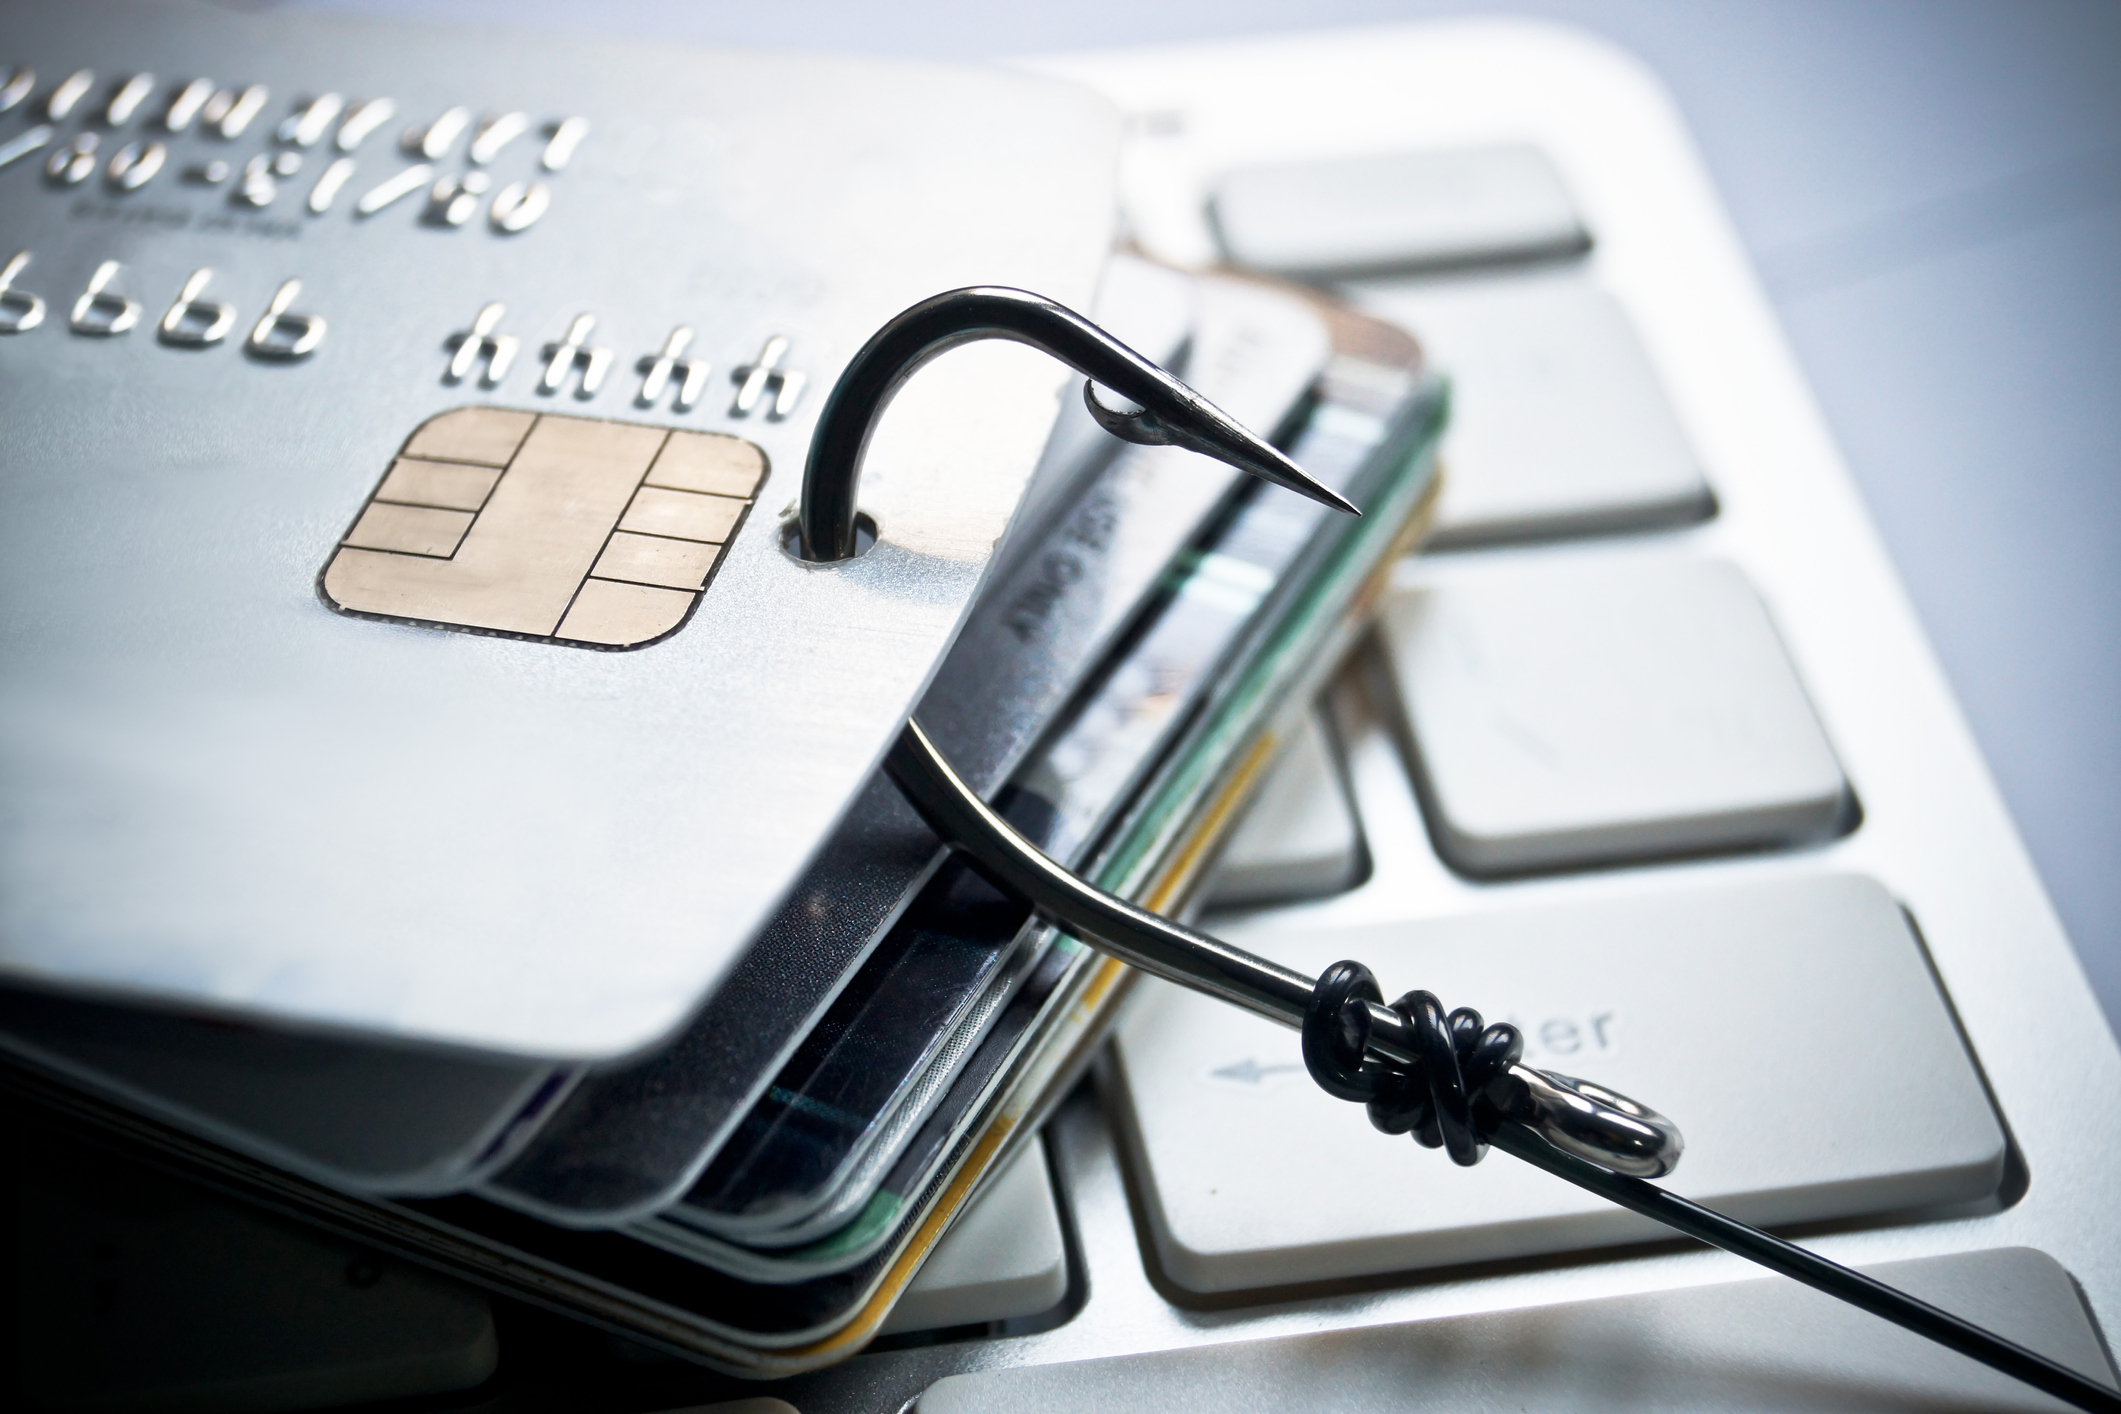 phishing carte bancaire cartes bancaires fraude